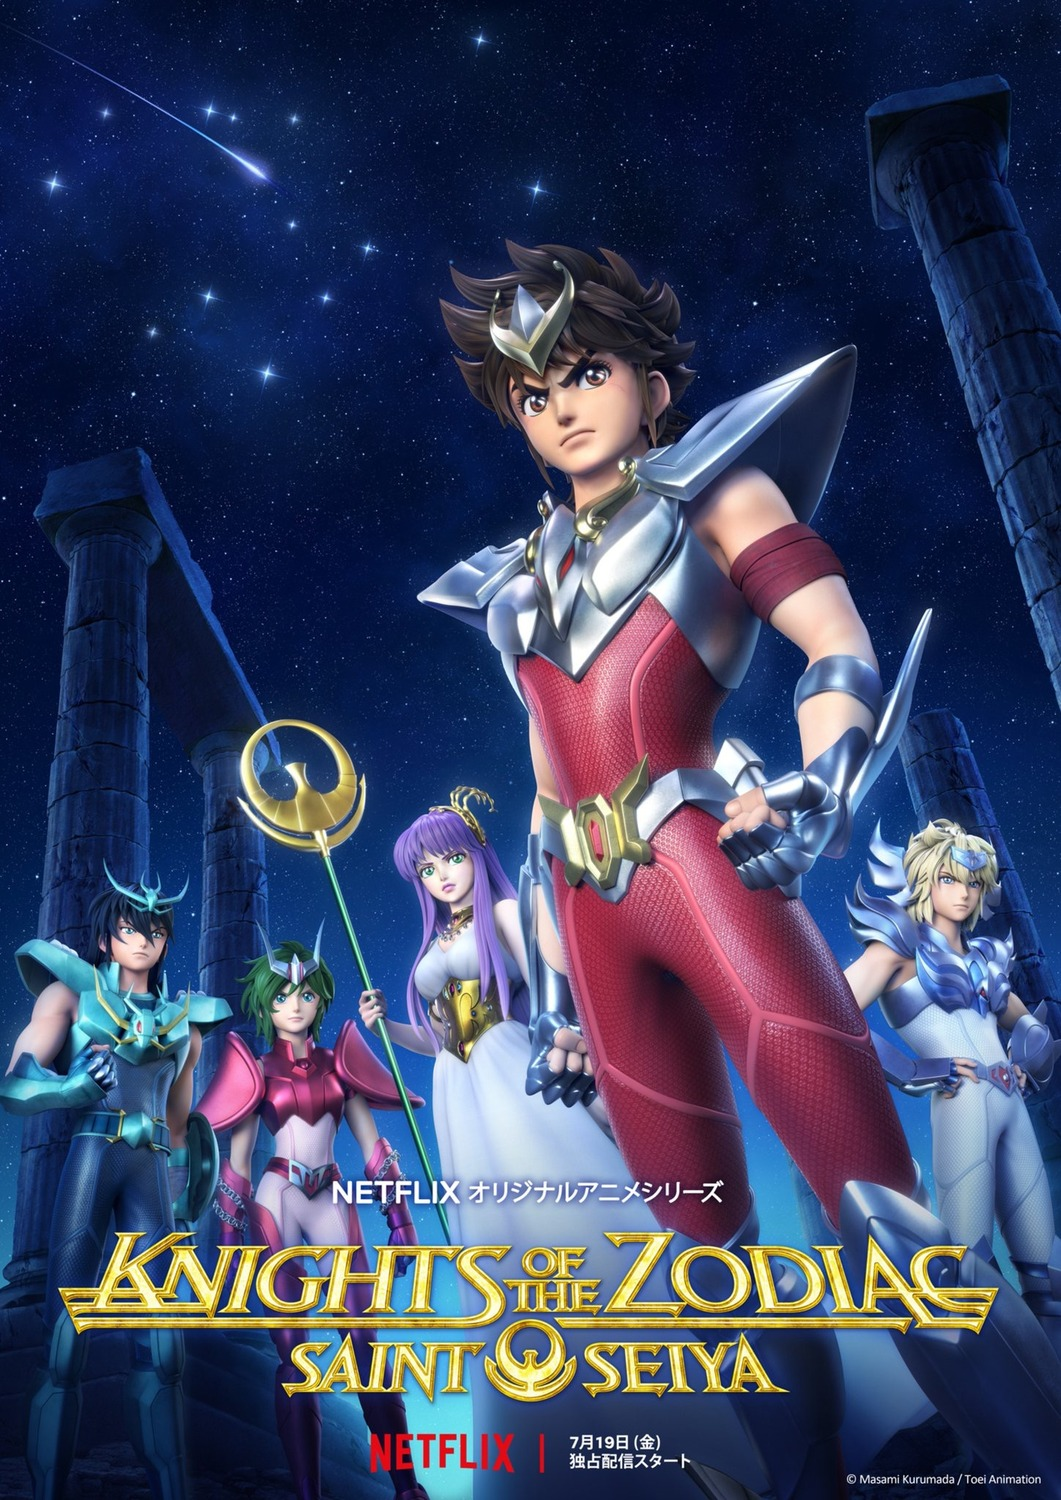 Saint Seiya: Knights of the Zodiac (TV Series 2019– ) - IMDb